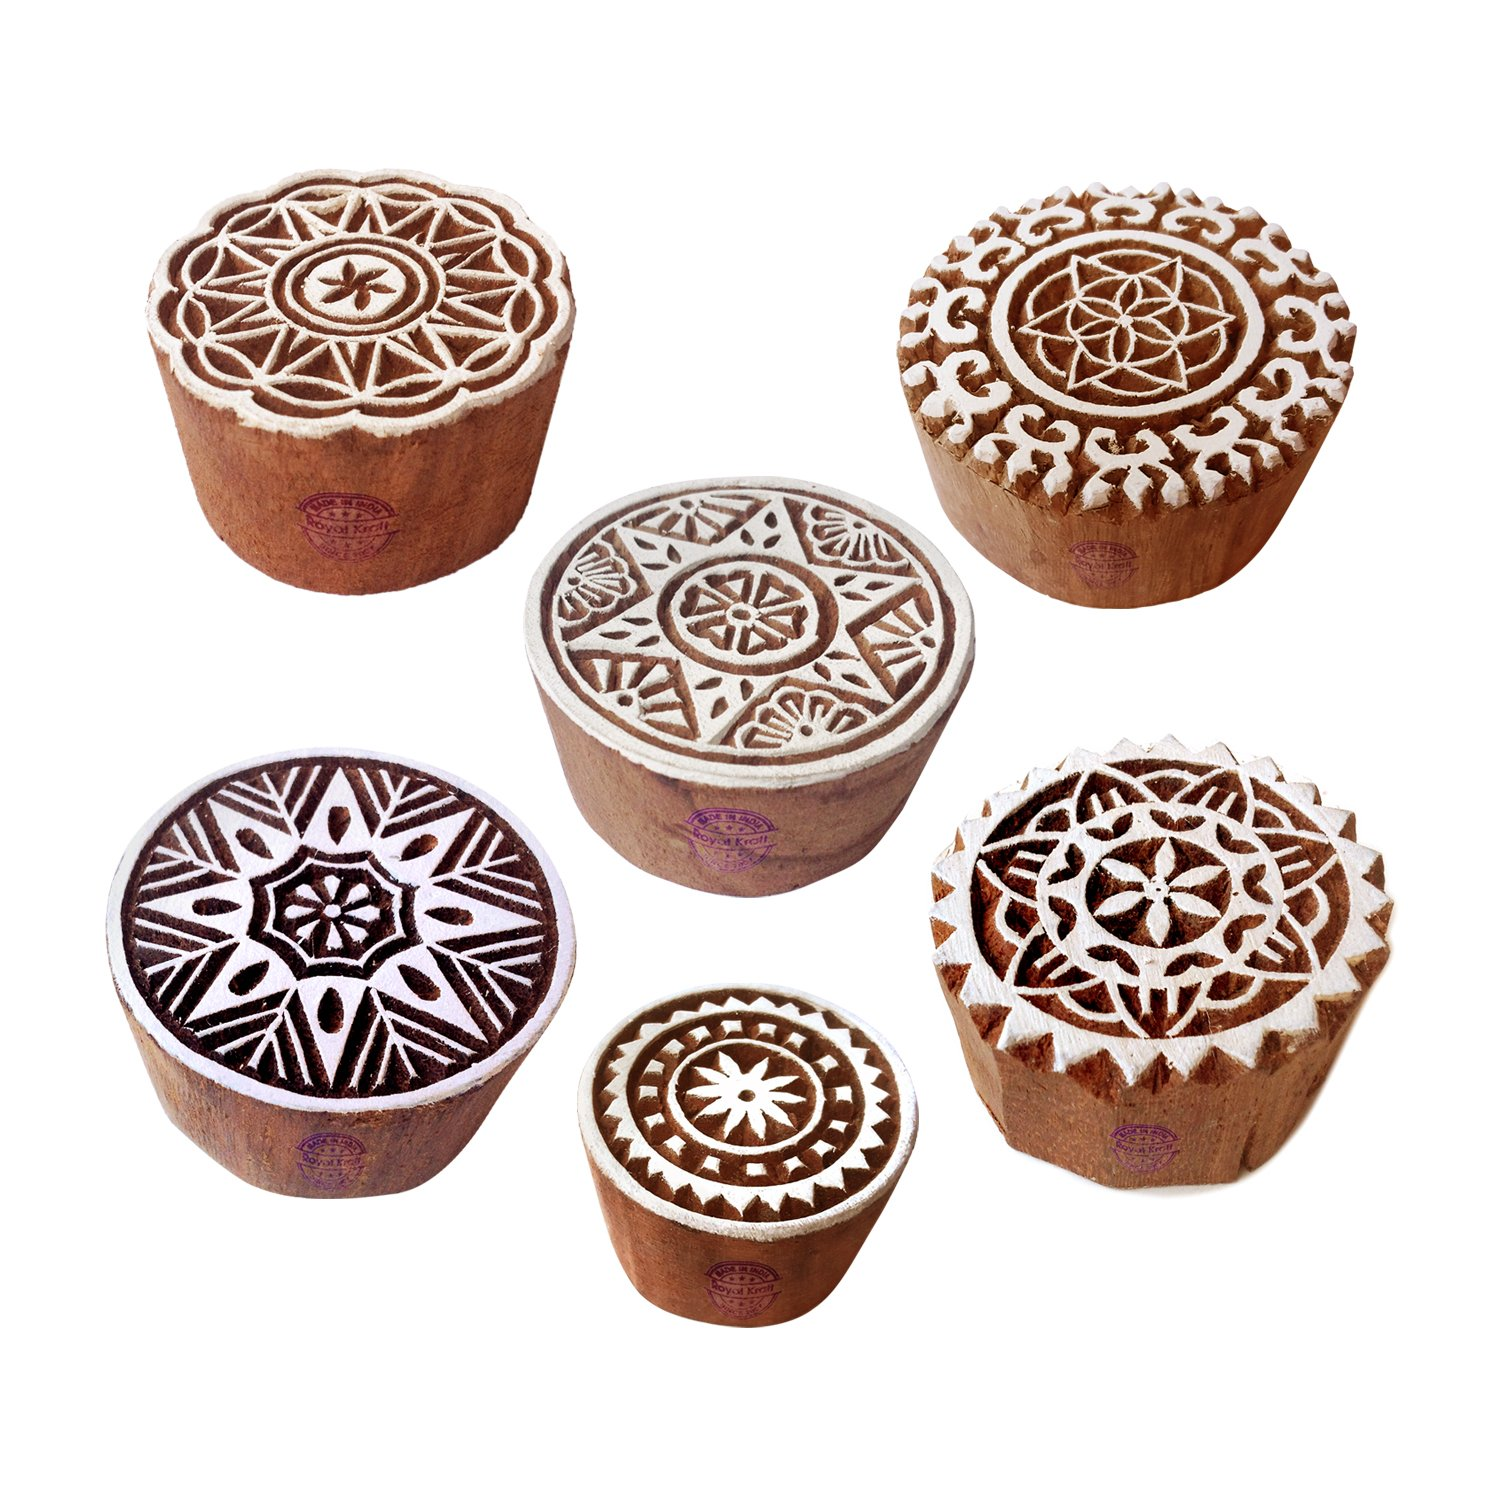 Textile Block Prints Scrapbook /& Clay Projects to Make Henna Tattoos Royal Kraft Geometric and Square Wooden Printing Stamps Set of 6